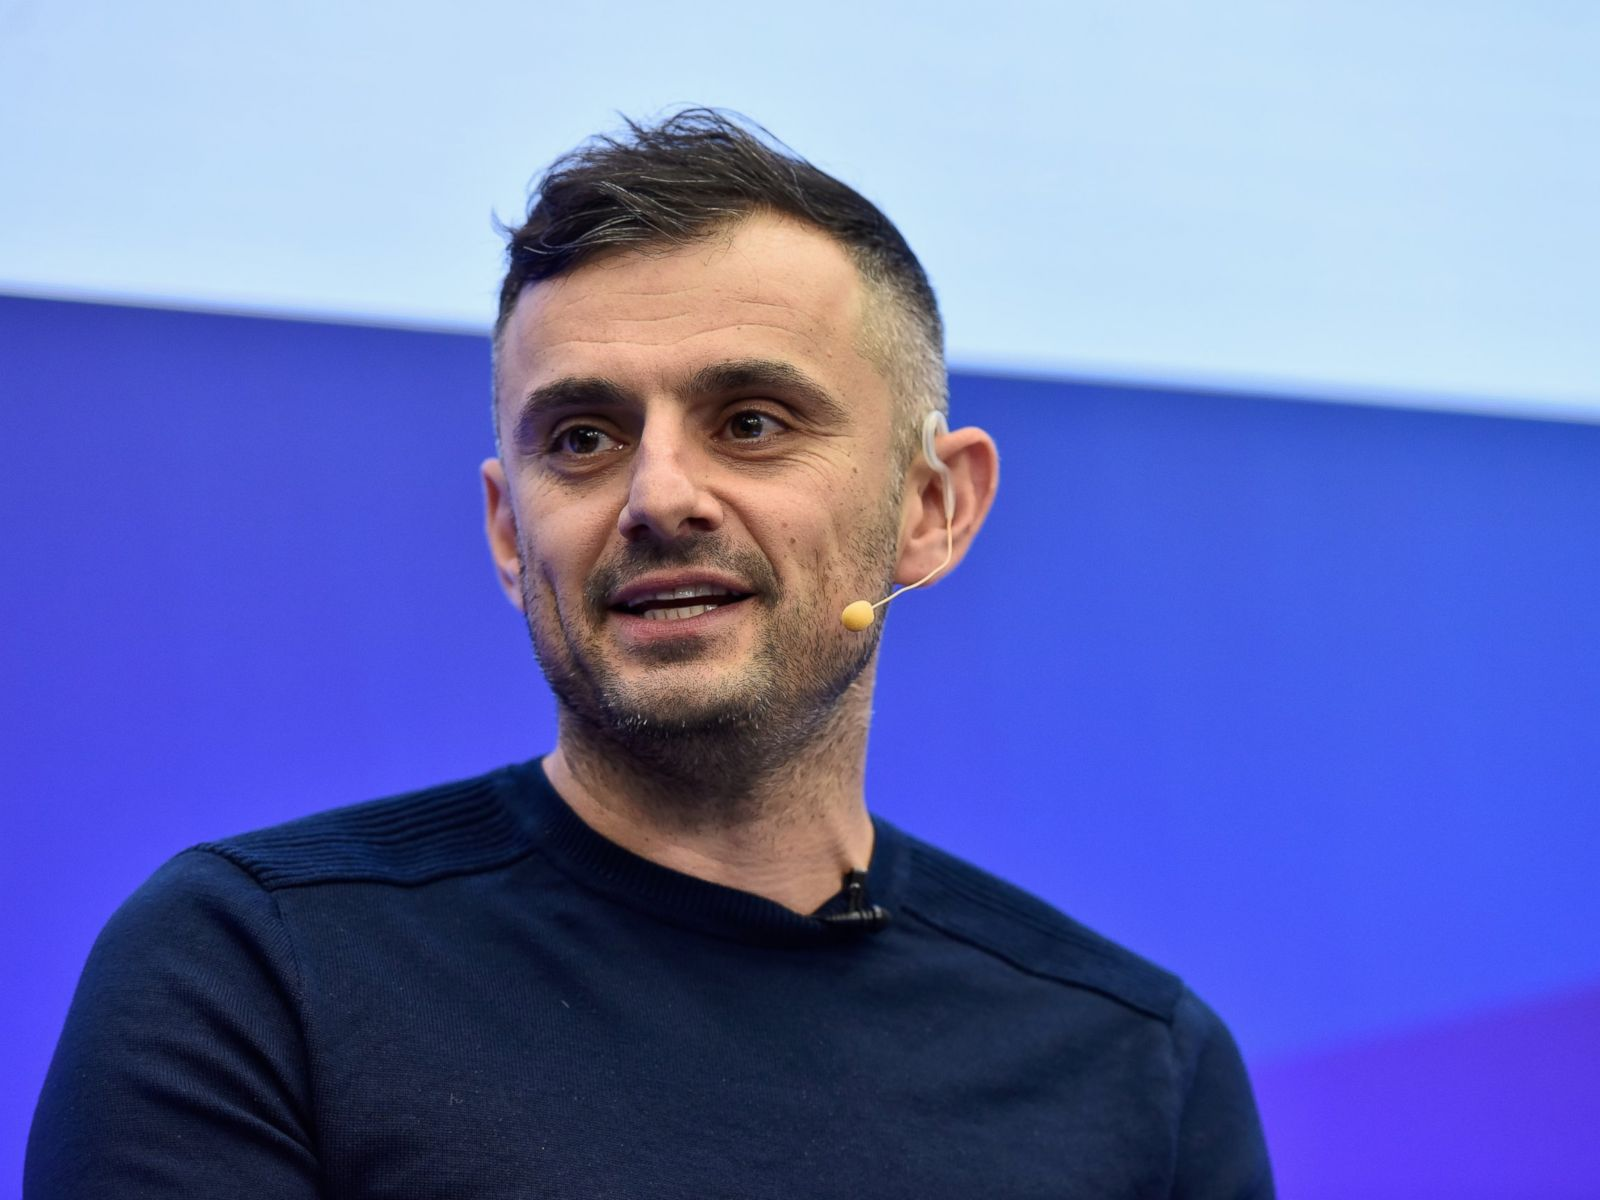 5 Things You May Not Know About Social Media Influencer Gary Vaynerchuk